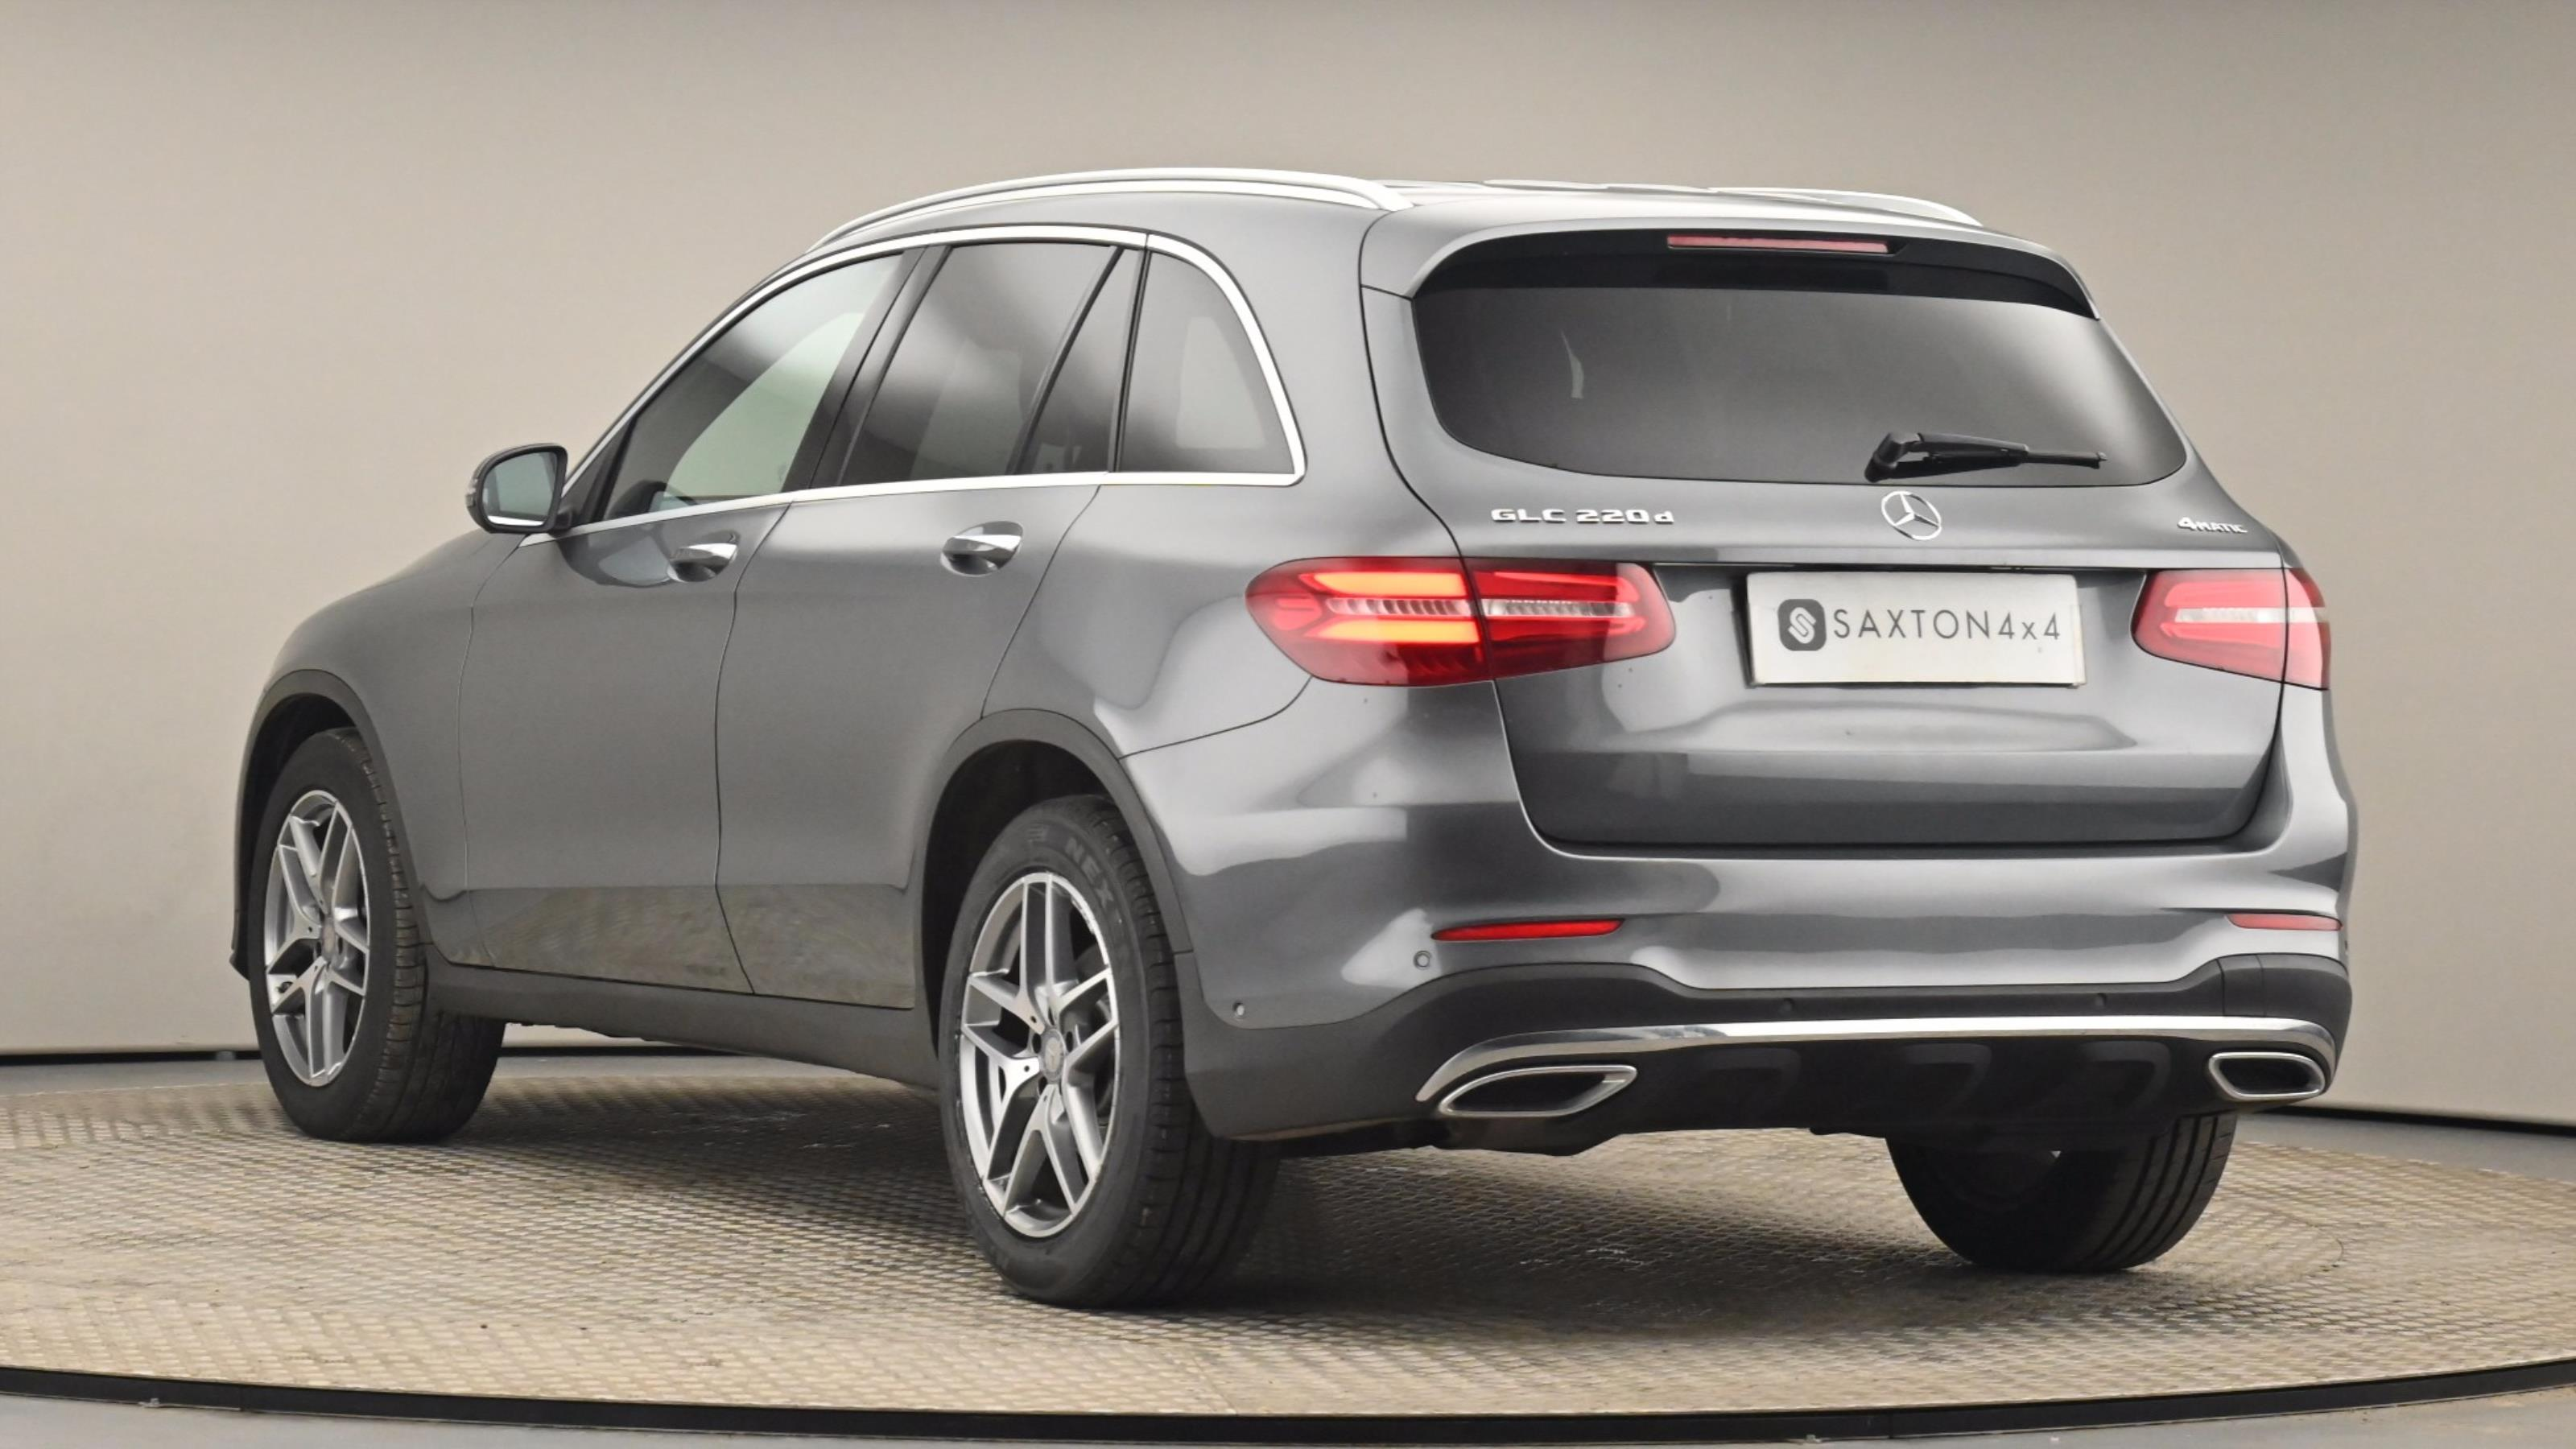 Used 16 Mercedes-Benz GLC COUPE GLC 220d 4Matic AMG Line Premium 5dr 9G-Tronic GREY at Saxton4x4